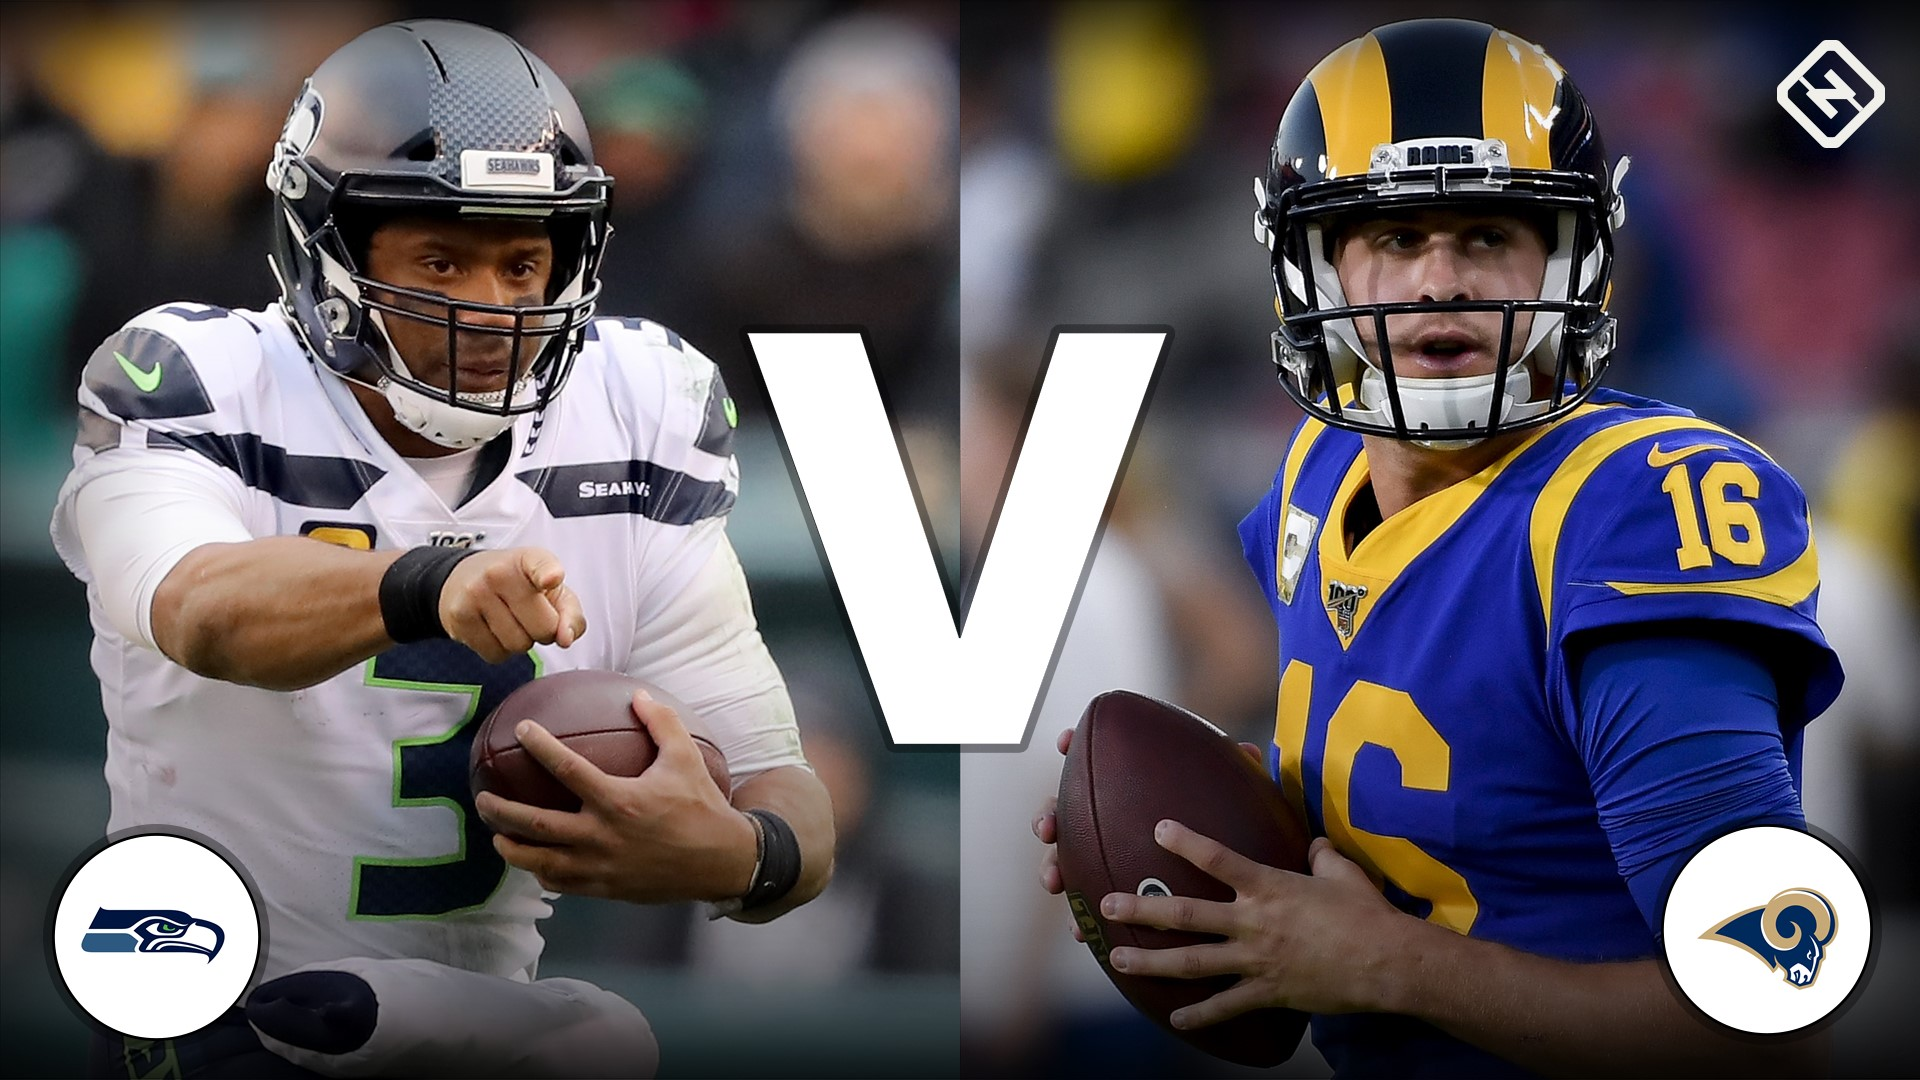 Seahawks Vs Rams Odds Prediction Betting Trends For